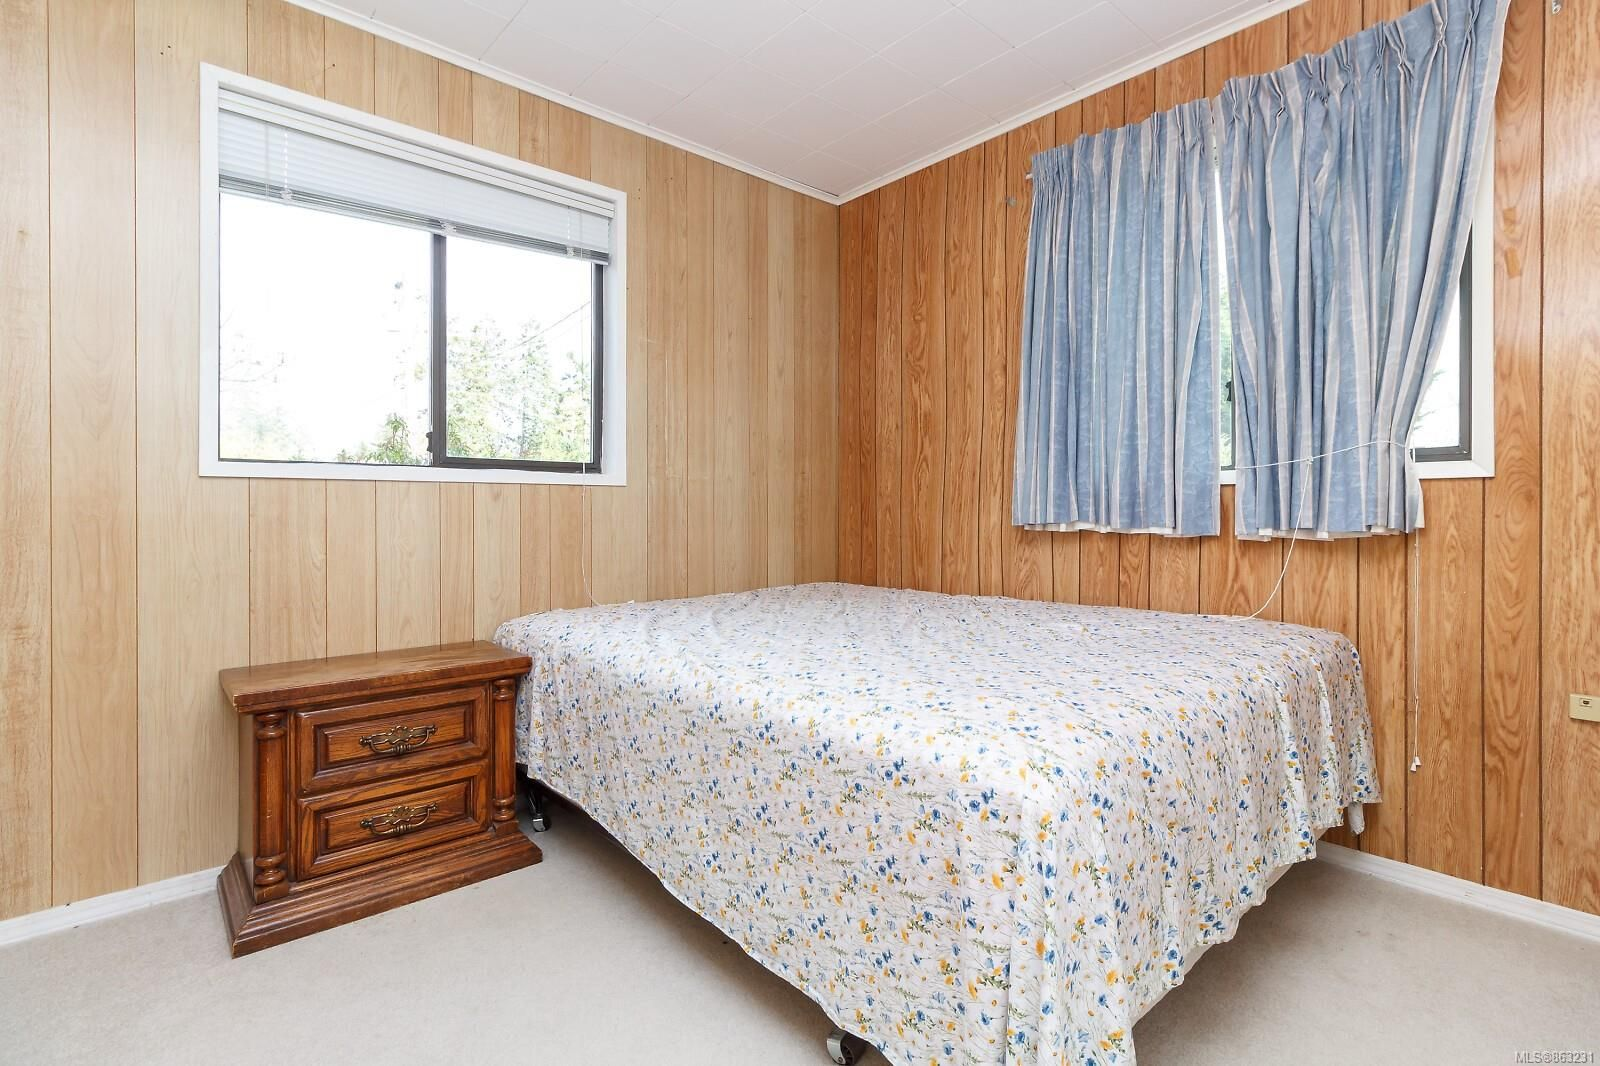 Photo 27: Photos: 1230 Hodges Rd in : PQ French Creek House for sale (Parksville/Qualicum)  : MLS®# 863231